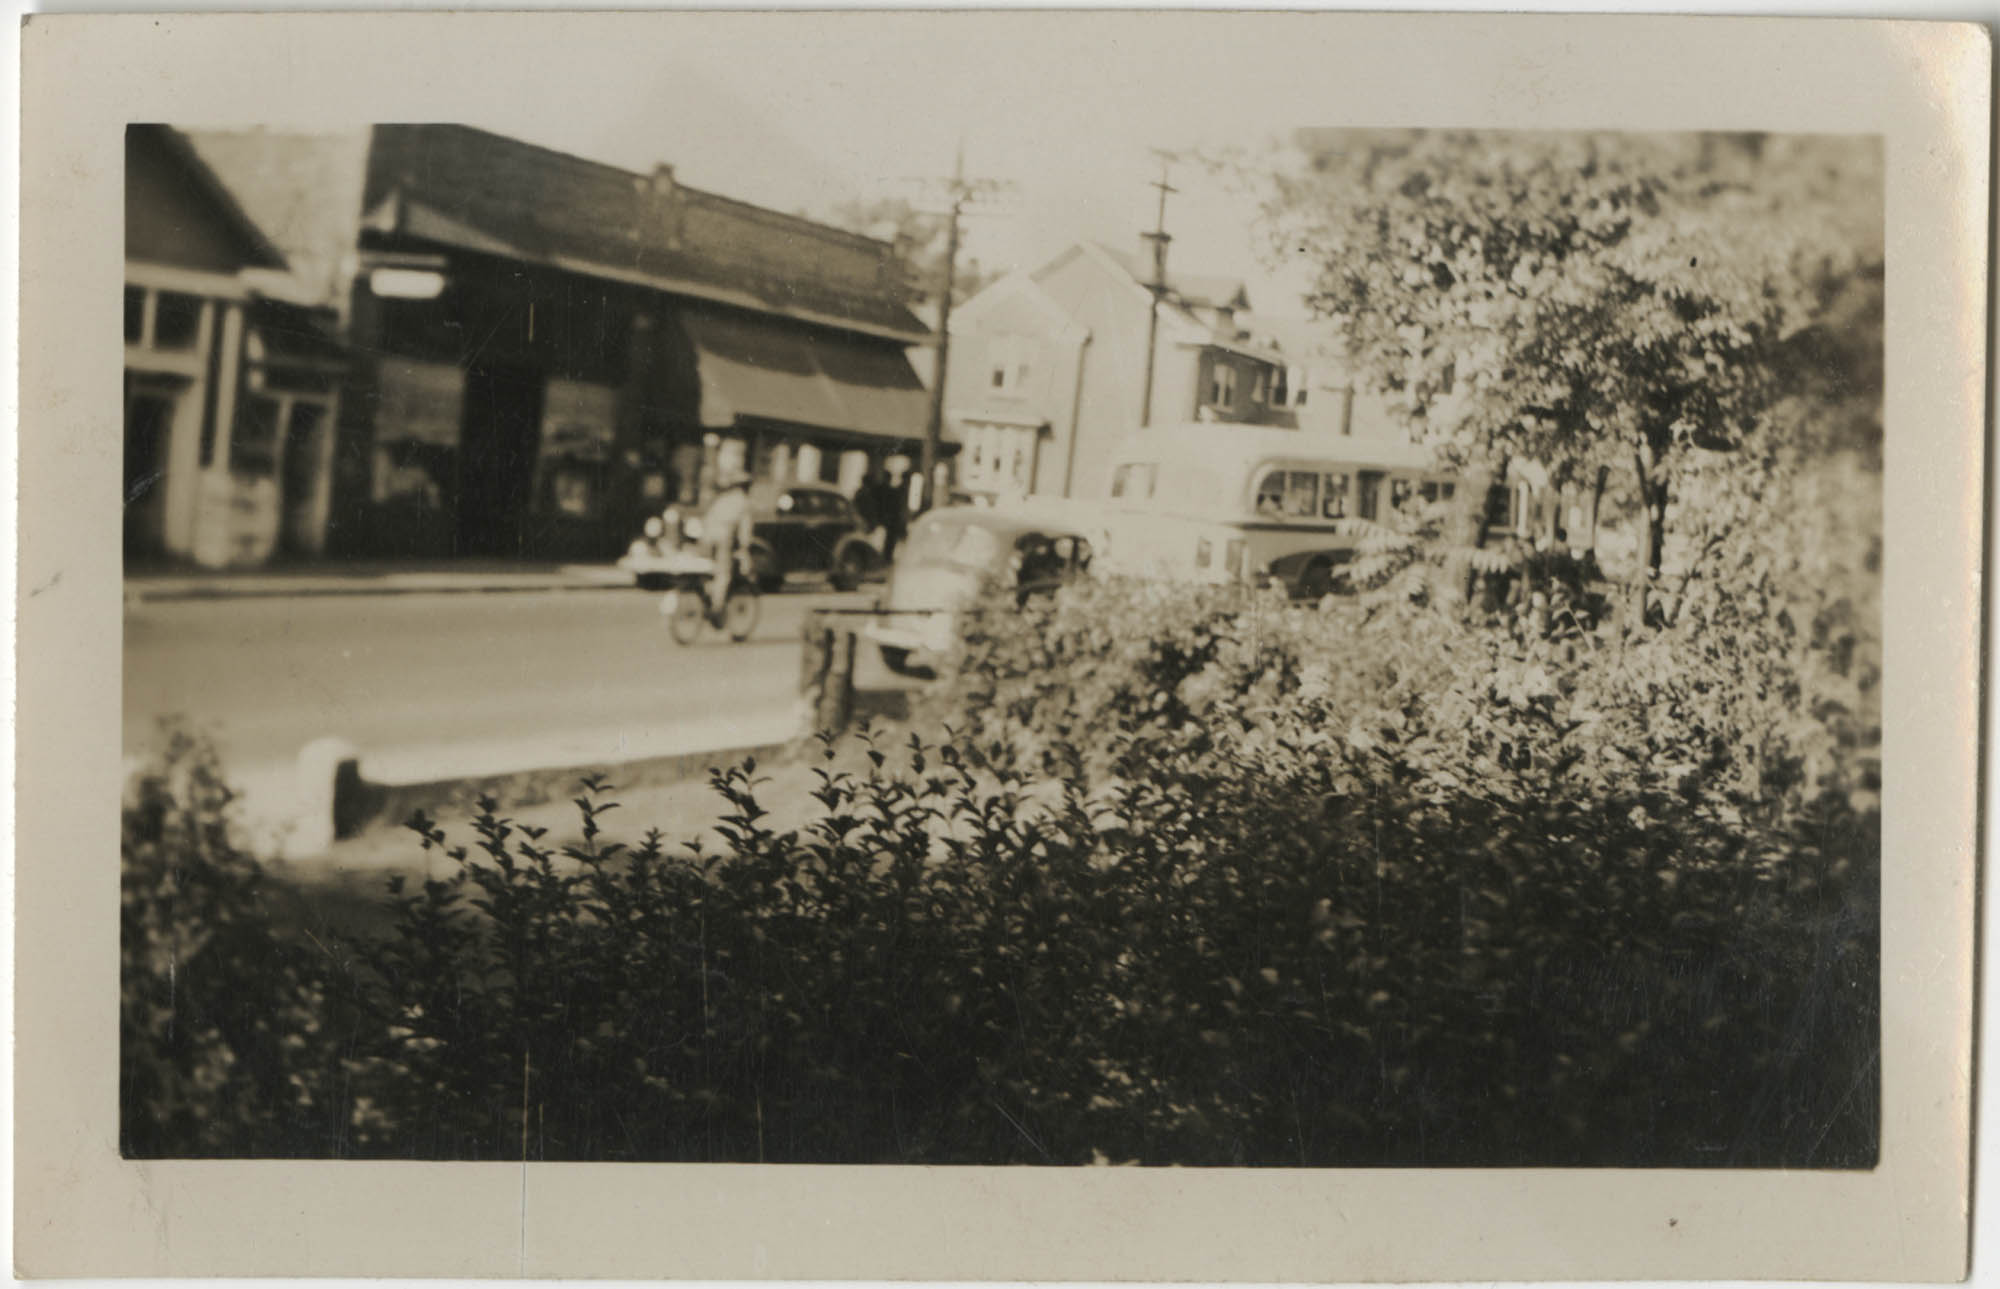 Photograph of a Street Scene